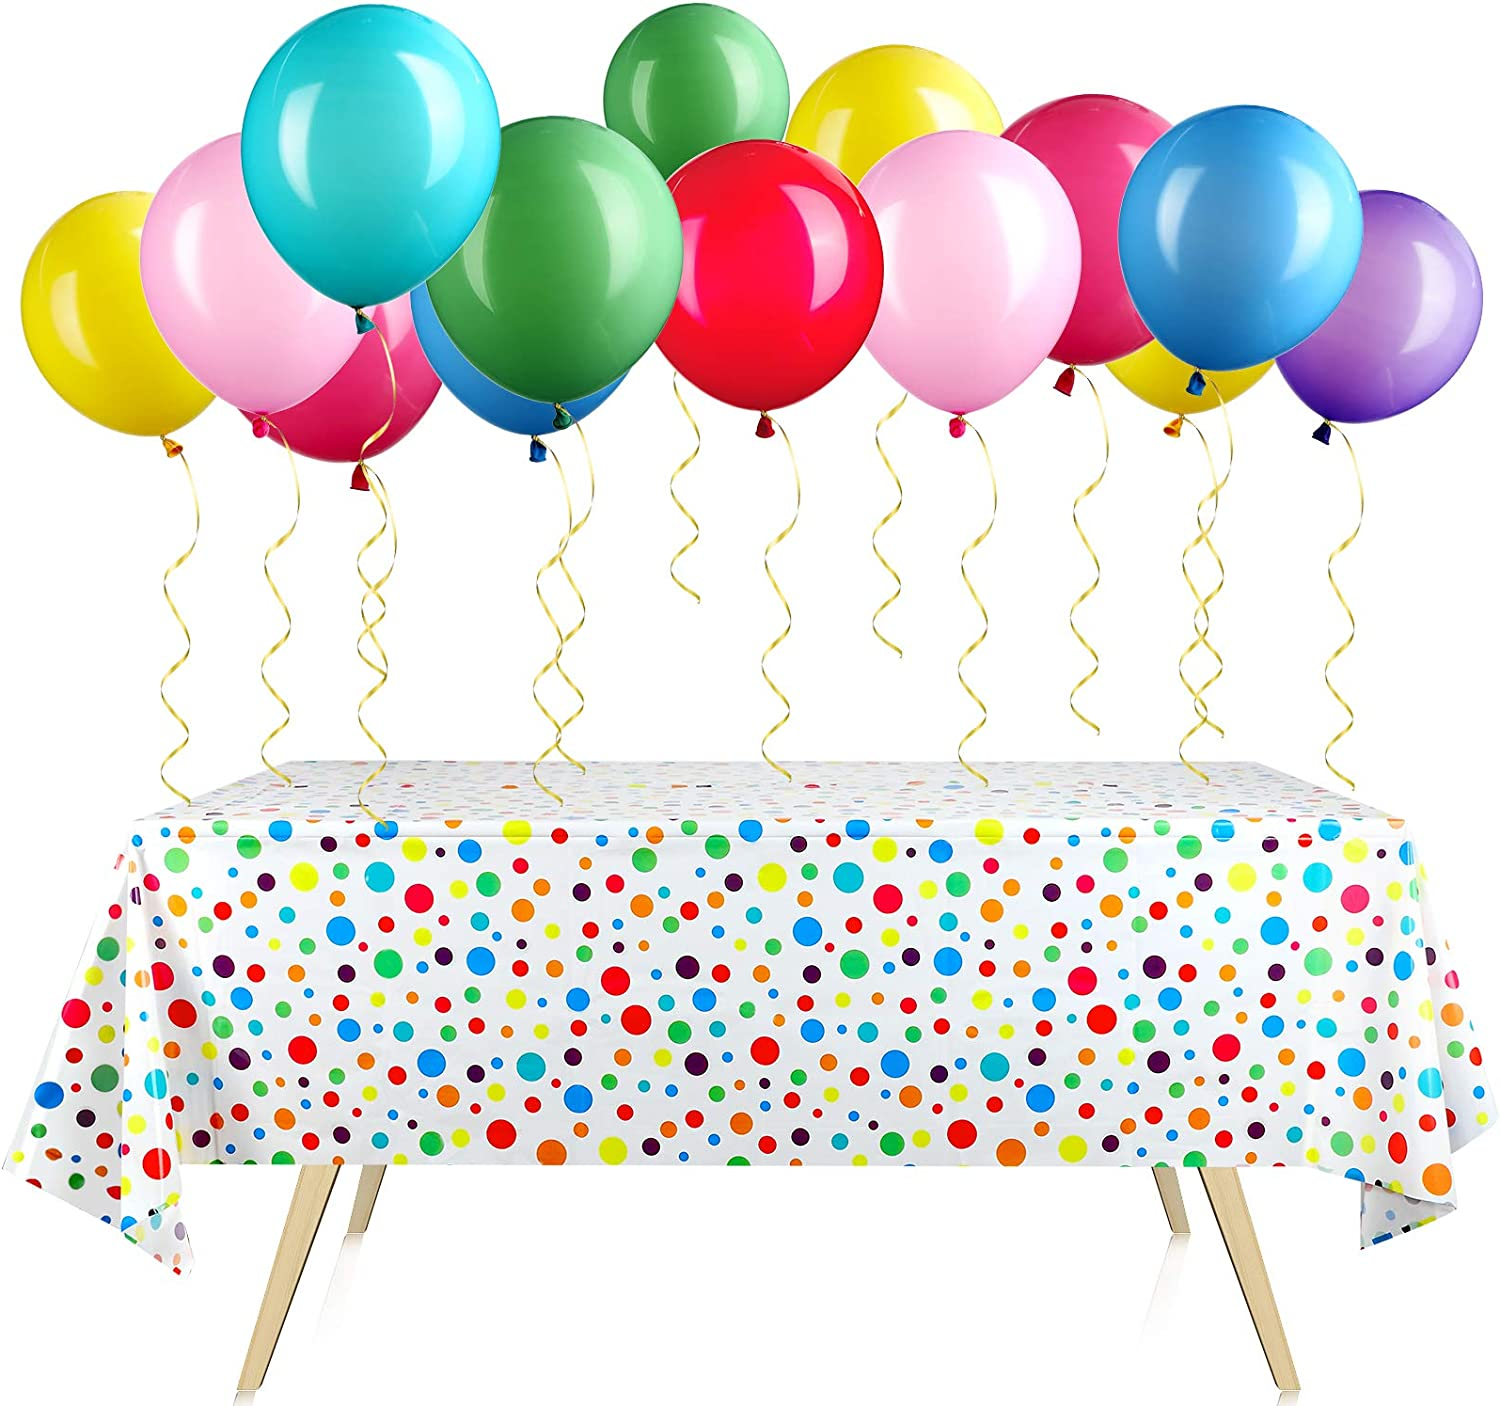 2 Pieces Polka Dot Plastic Tablecloth 51 x 71 Inch Rainbow Birthday Plastic Rectangle Table Cover with 24 Pieces 12 Inch Rainbow Party Latex Balloons for Baby Shower Birthday Party Wedding Engagement